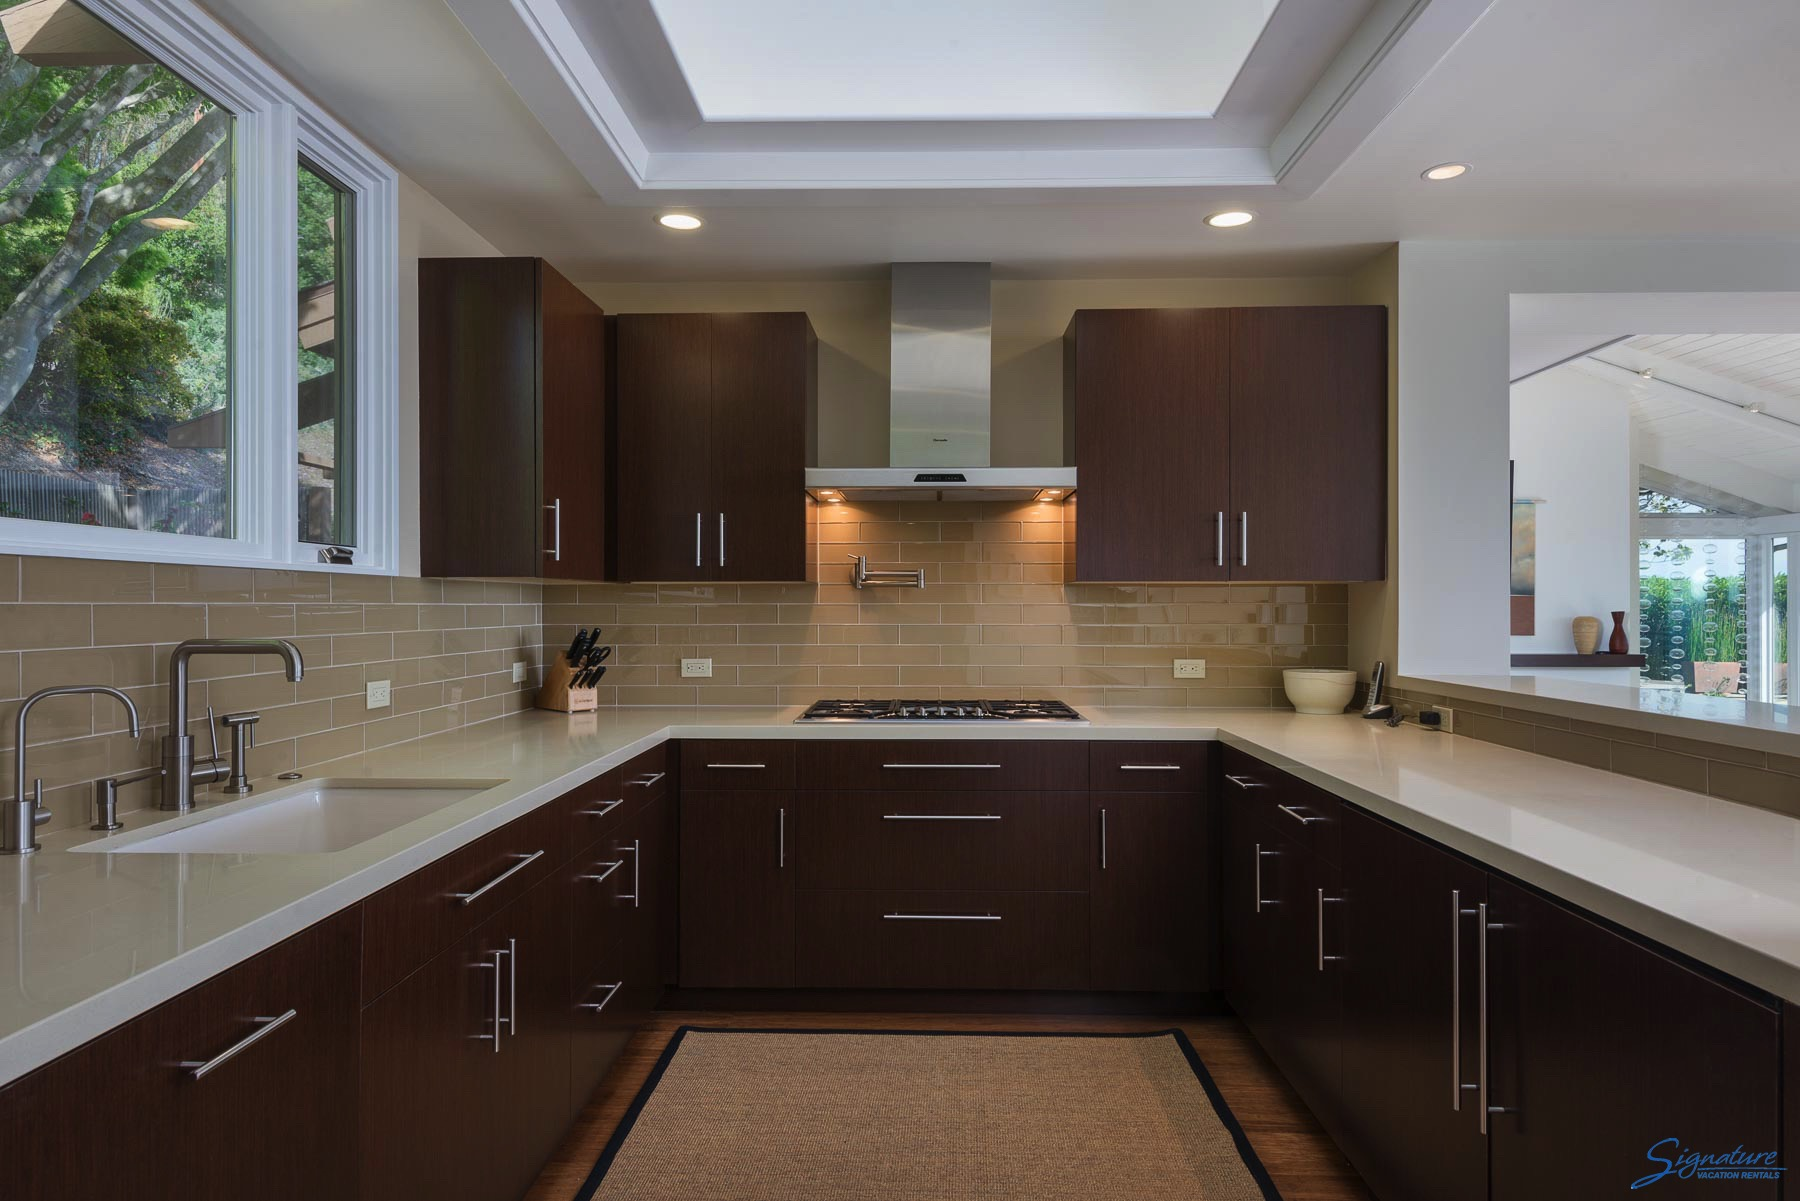 Light and bright kitchen with gas stove, stainless steel appliances and a breakfast bar